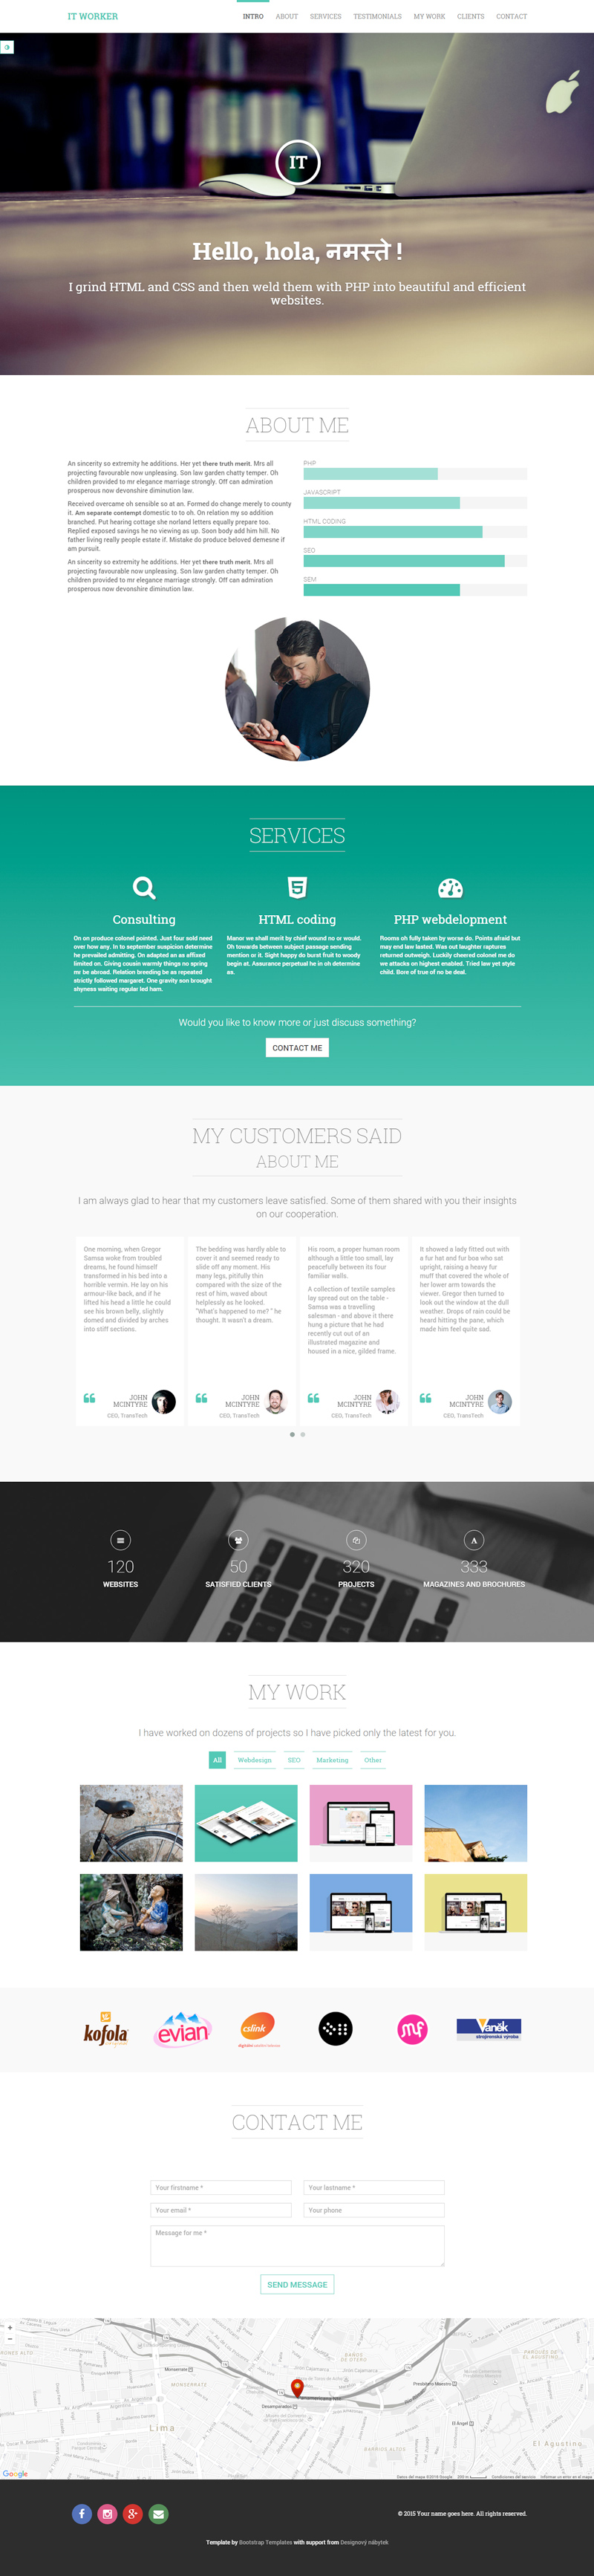 IT Worker: Responsive Portfolio HTML & CSS Template - ByPeople